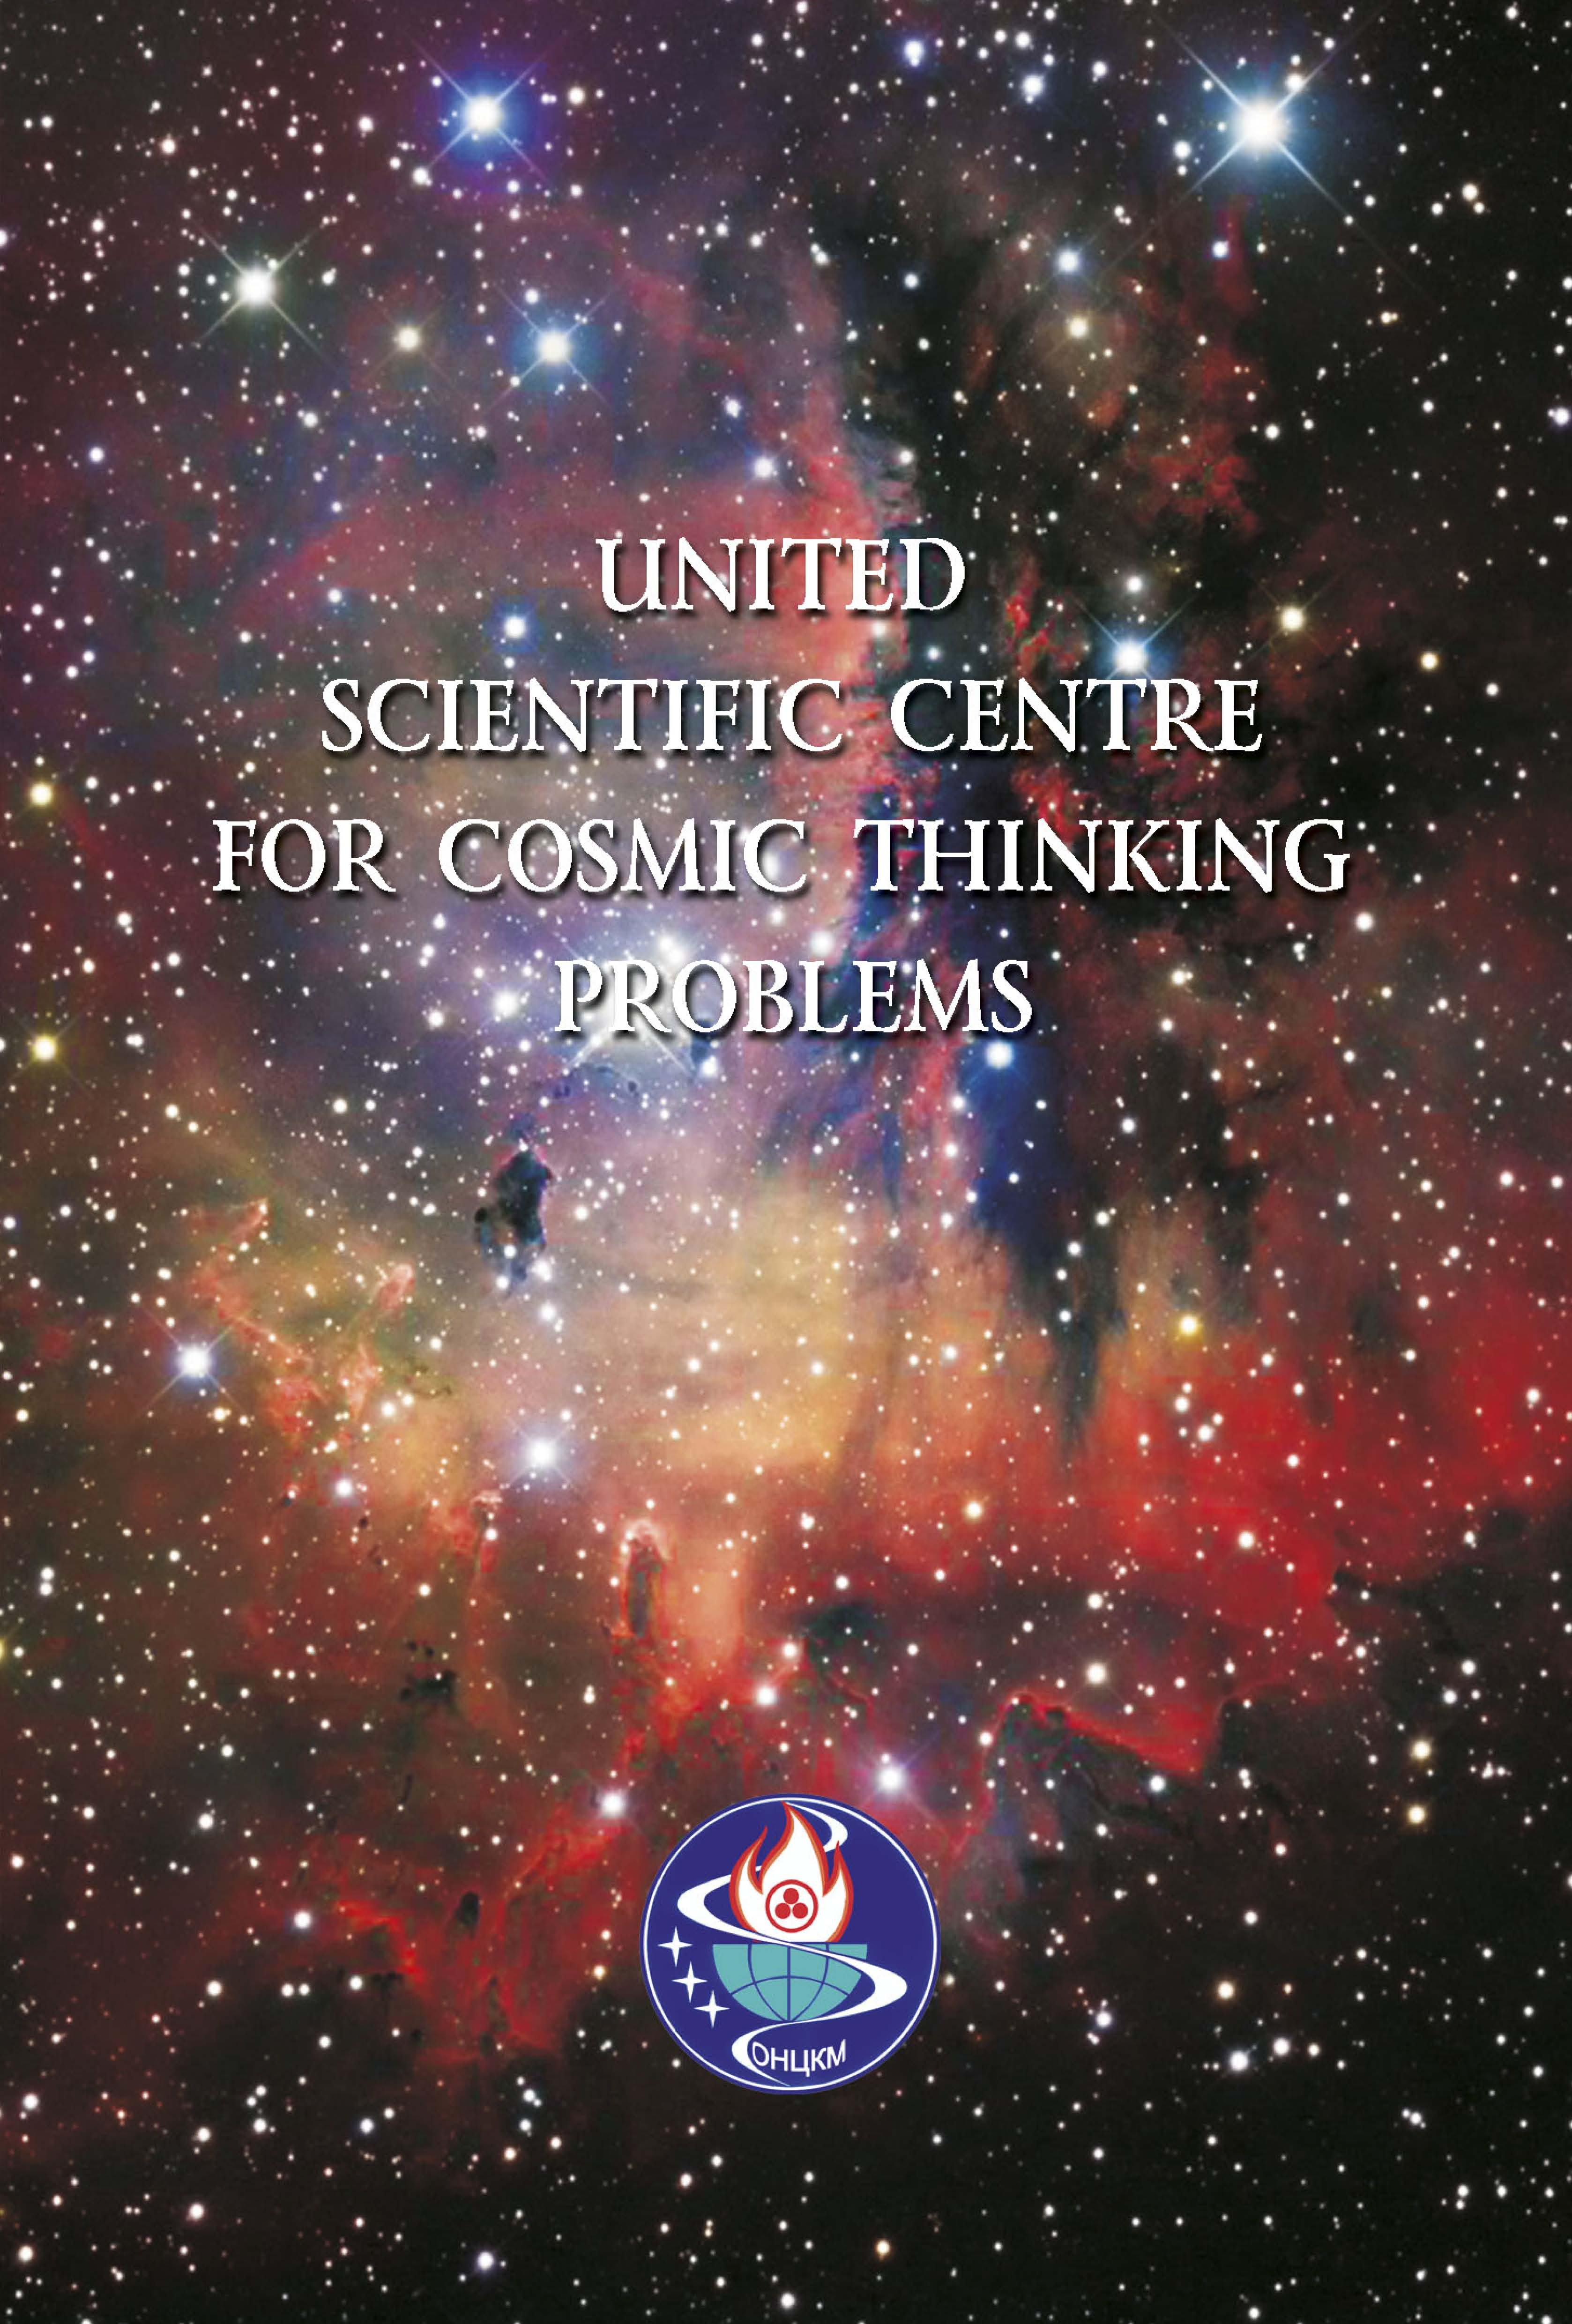 United Scientific Centre for Cosmic Thinking Problems